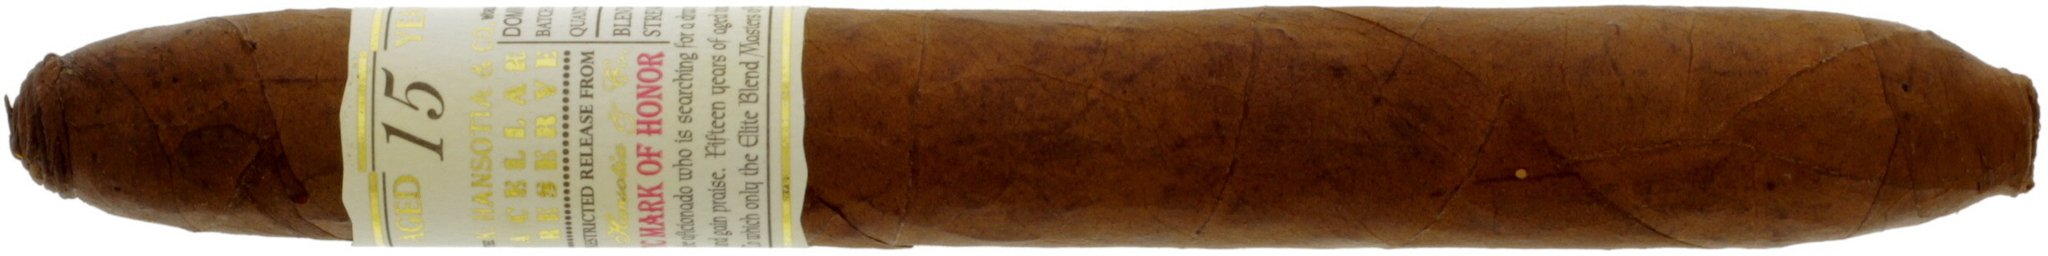 Gurkha Cellar Reserve Prisoner (Churchill)